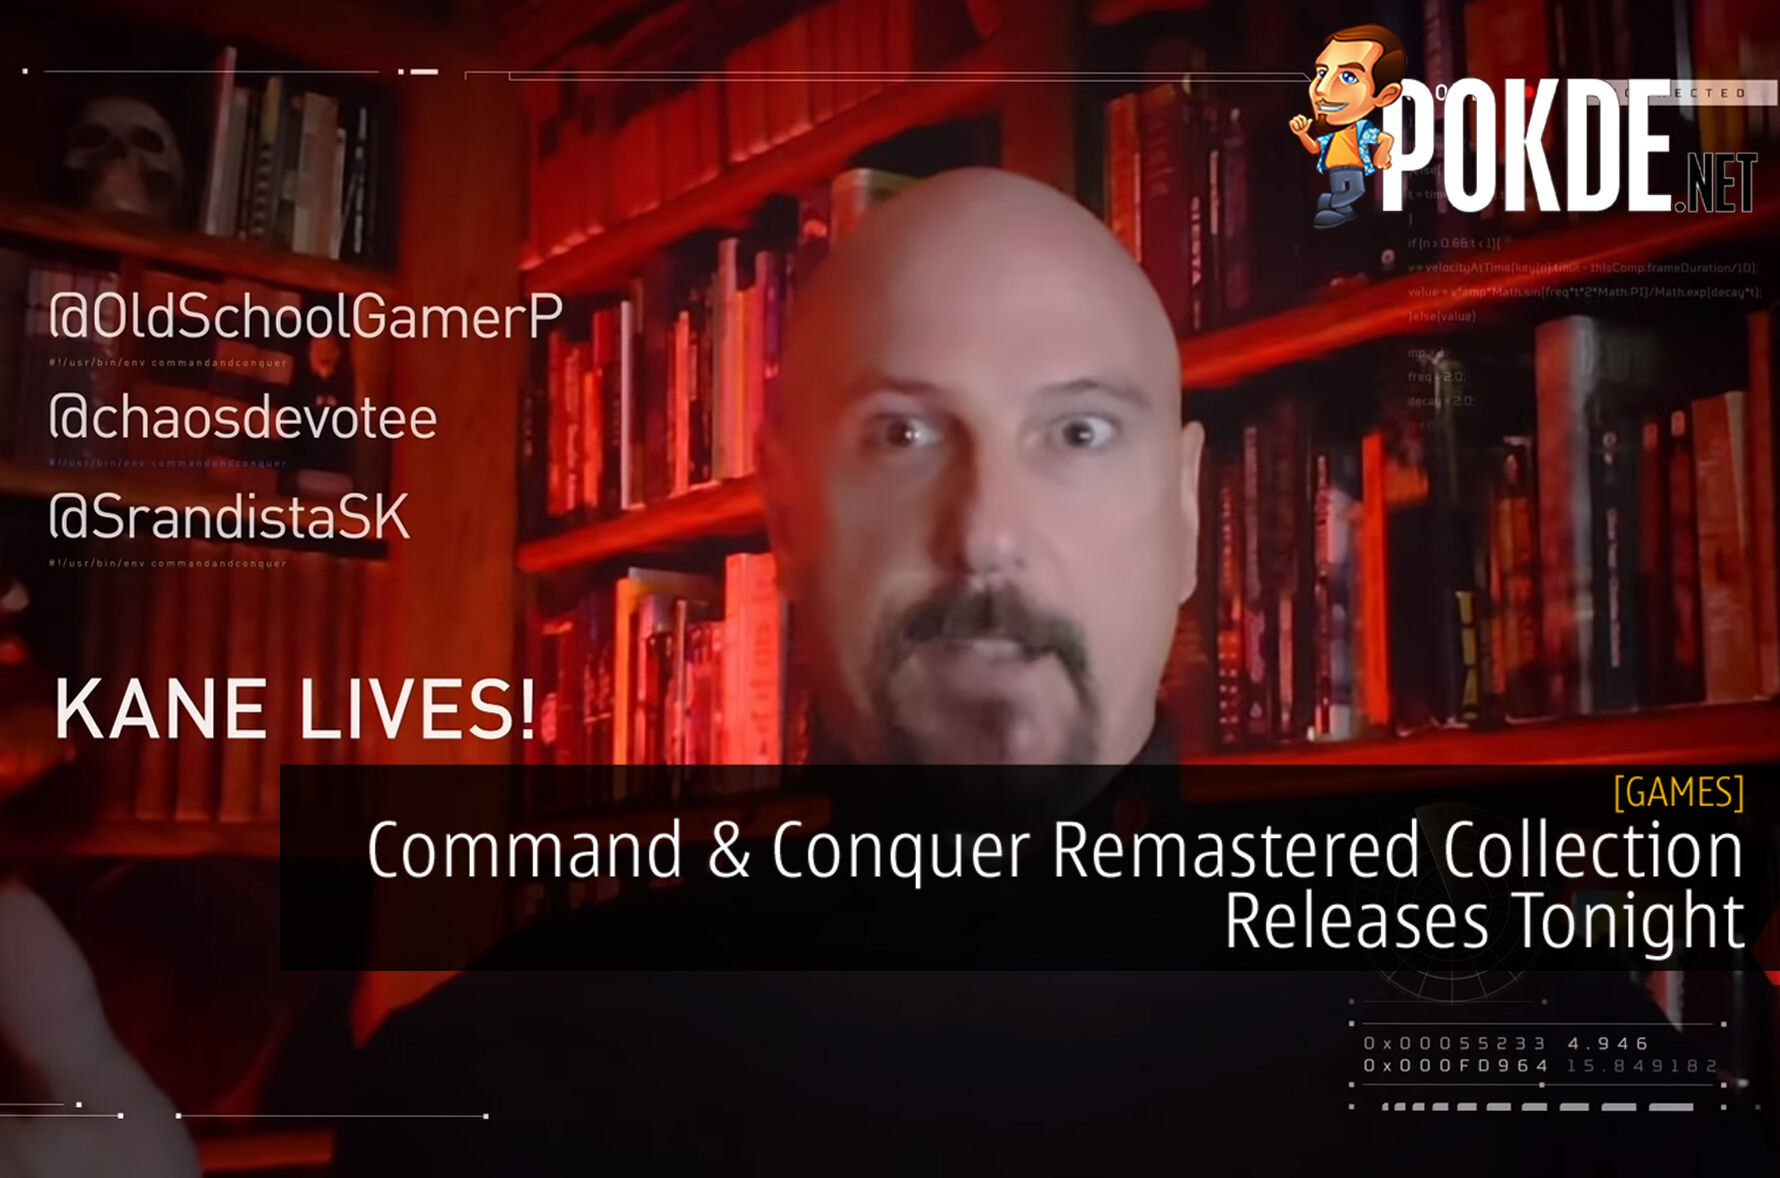 Command & Conquer Remastered Collection Releases Tonight 6